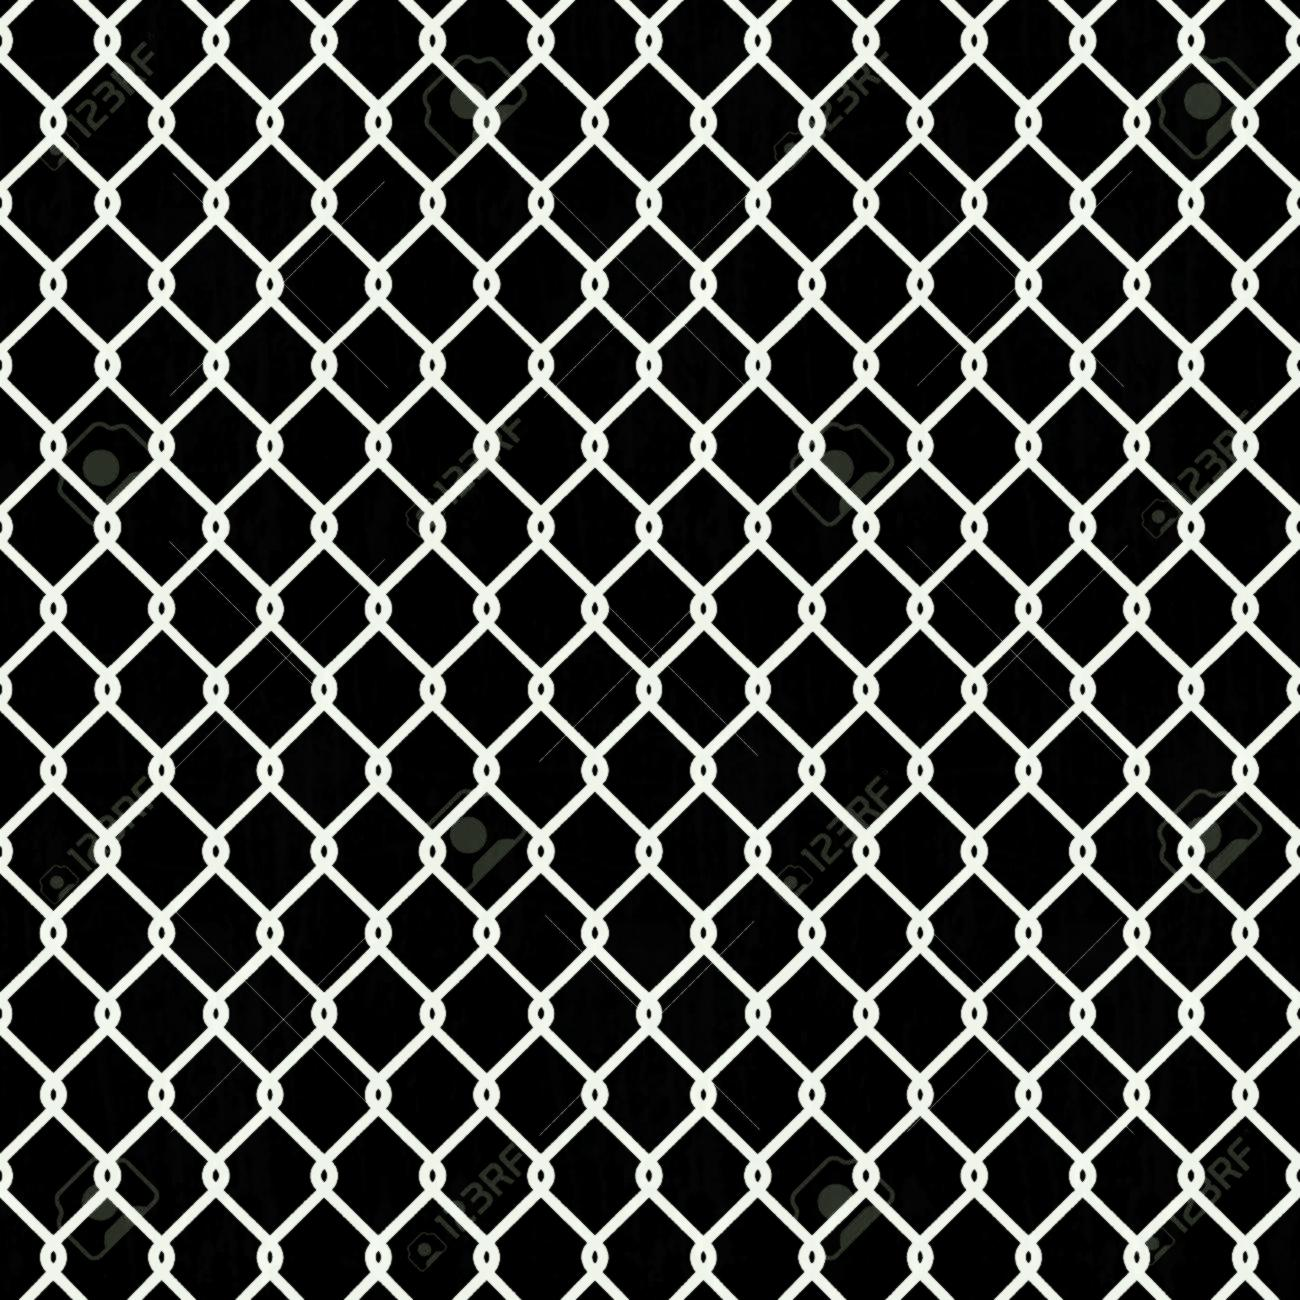 1300x1300 Seamless Chain Link Fence Pattern Texture Wallpaper Stock Vector